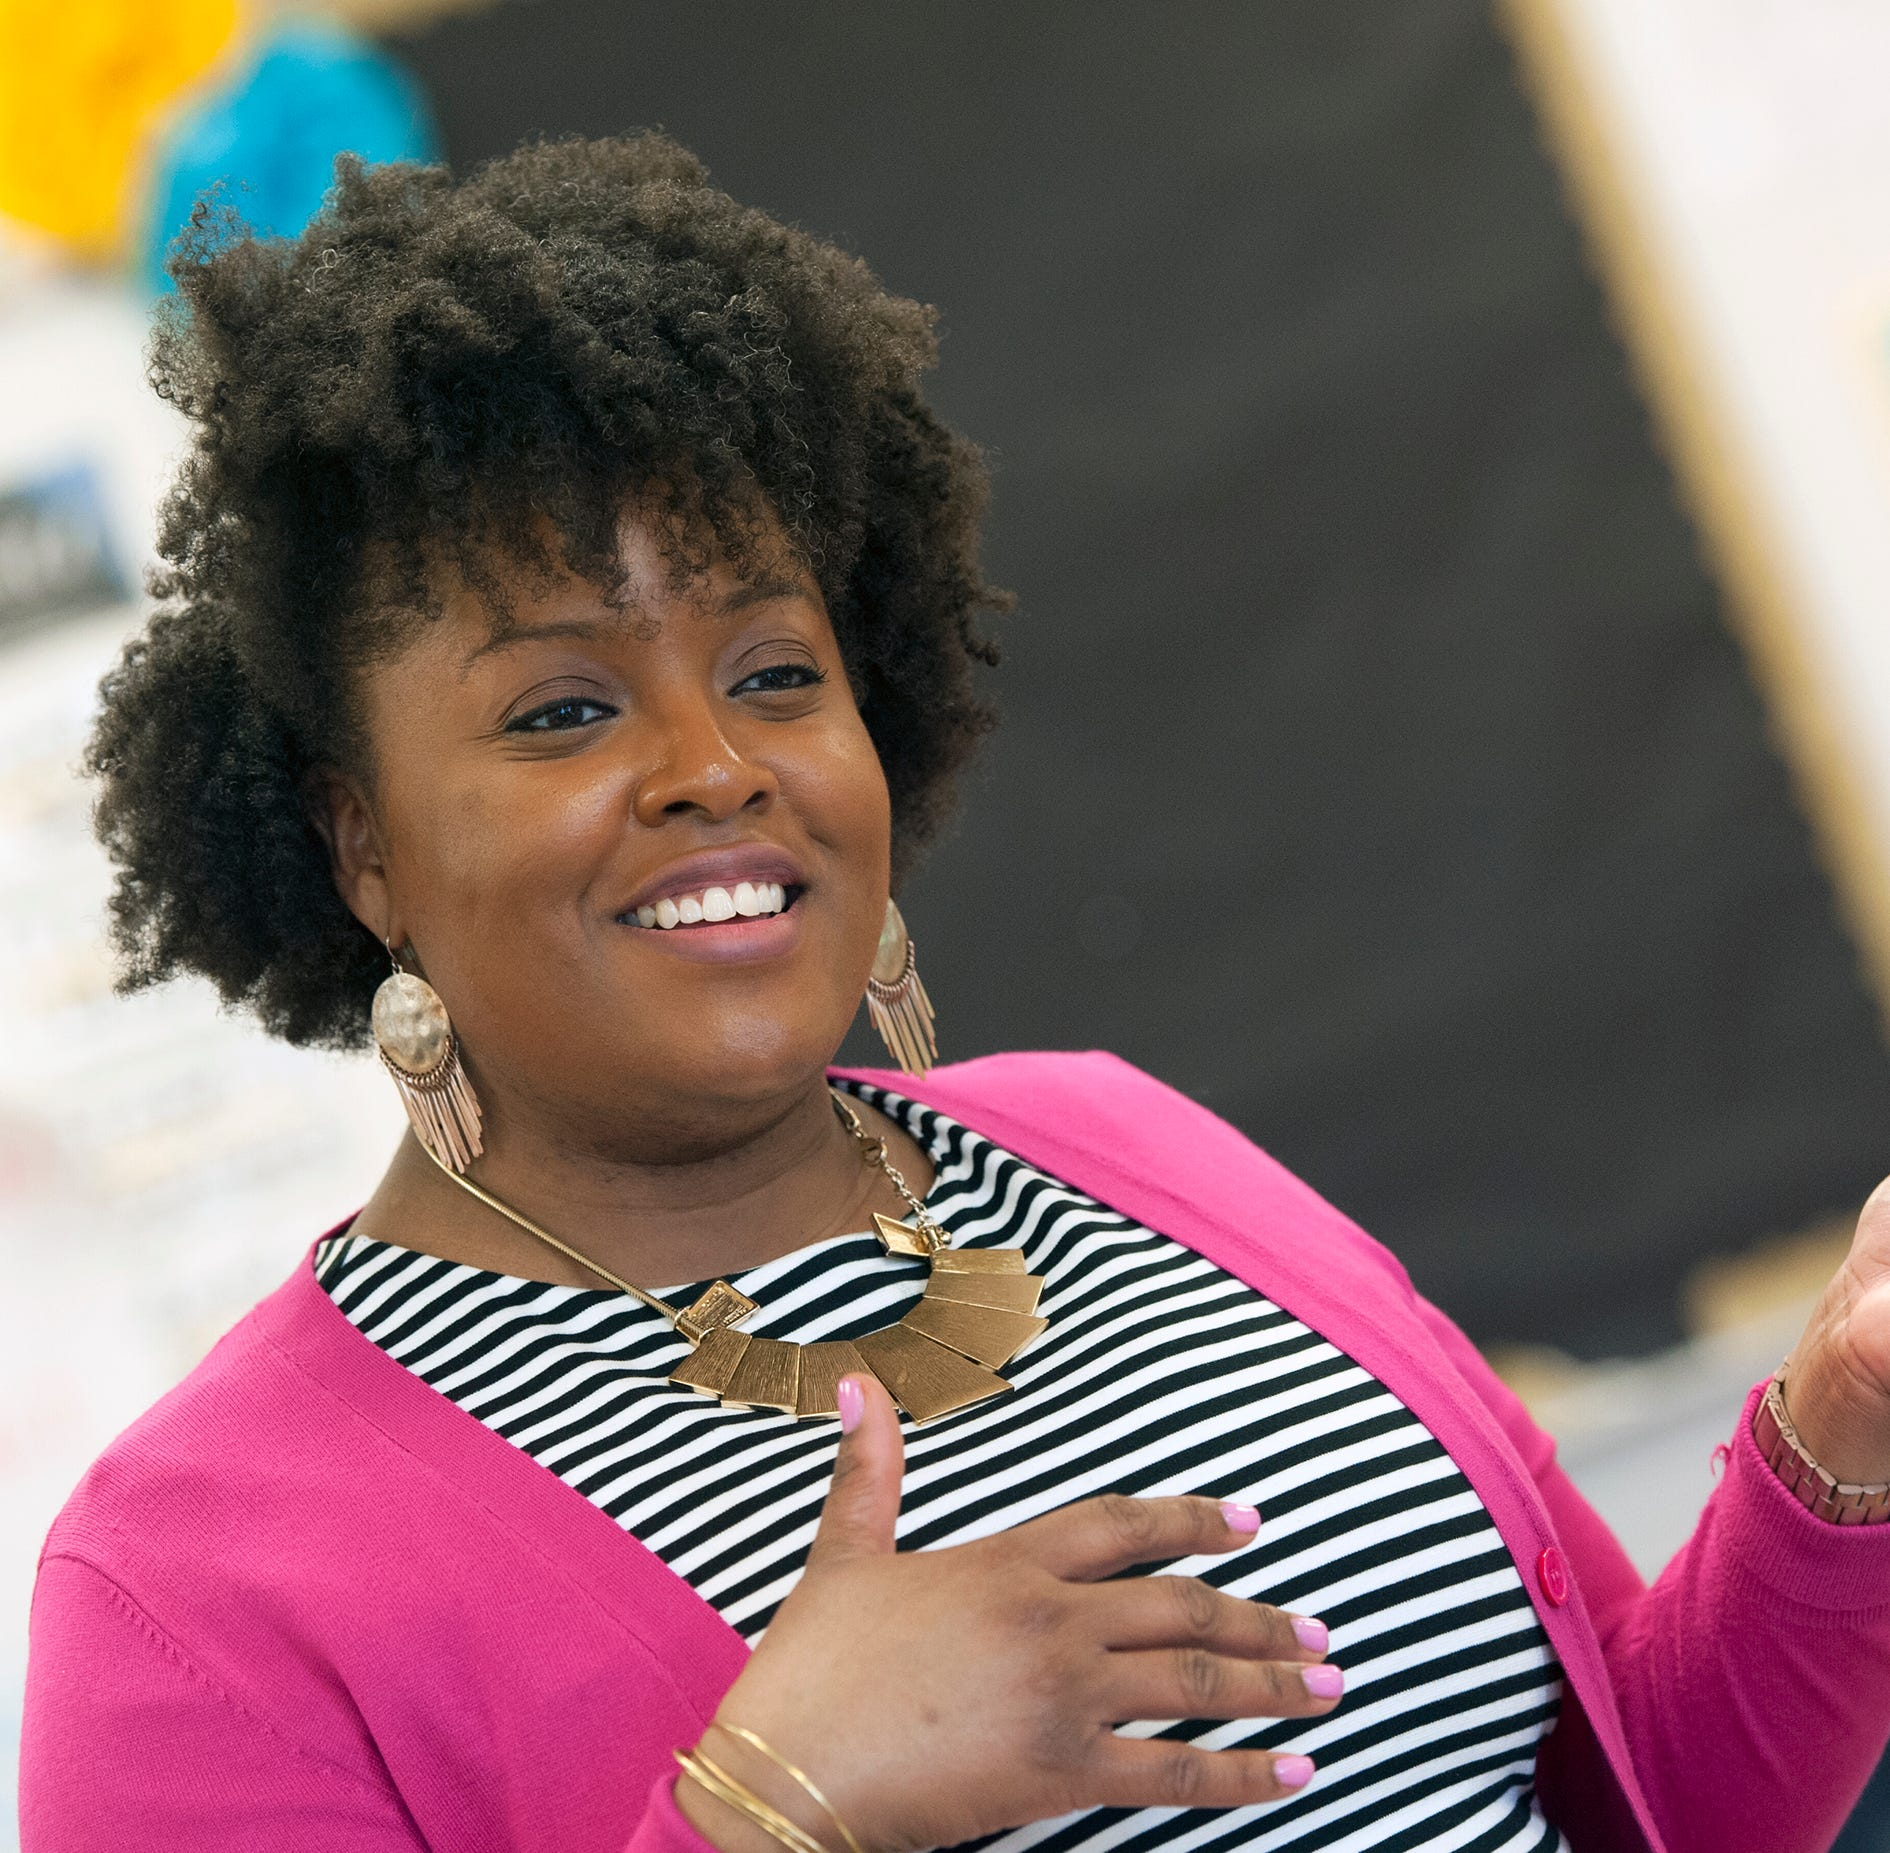 She teaches 4th grade at an 'F' school in a poor Mississippi town. Here's why she stays.